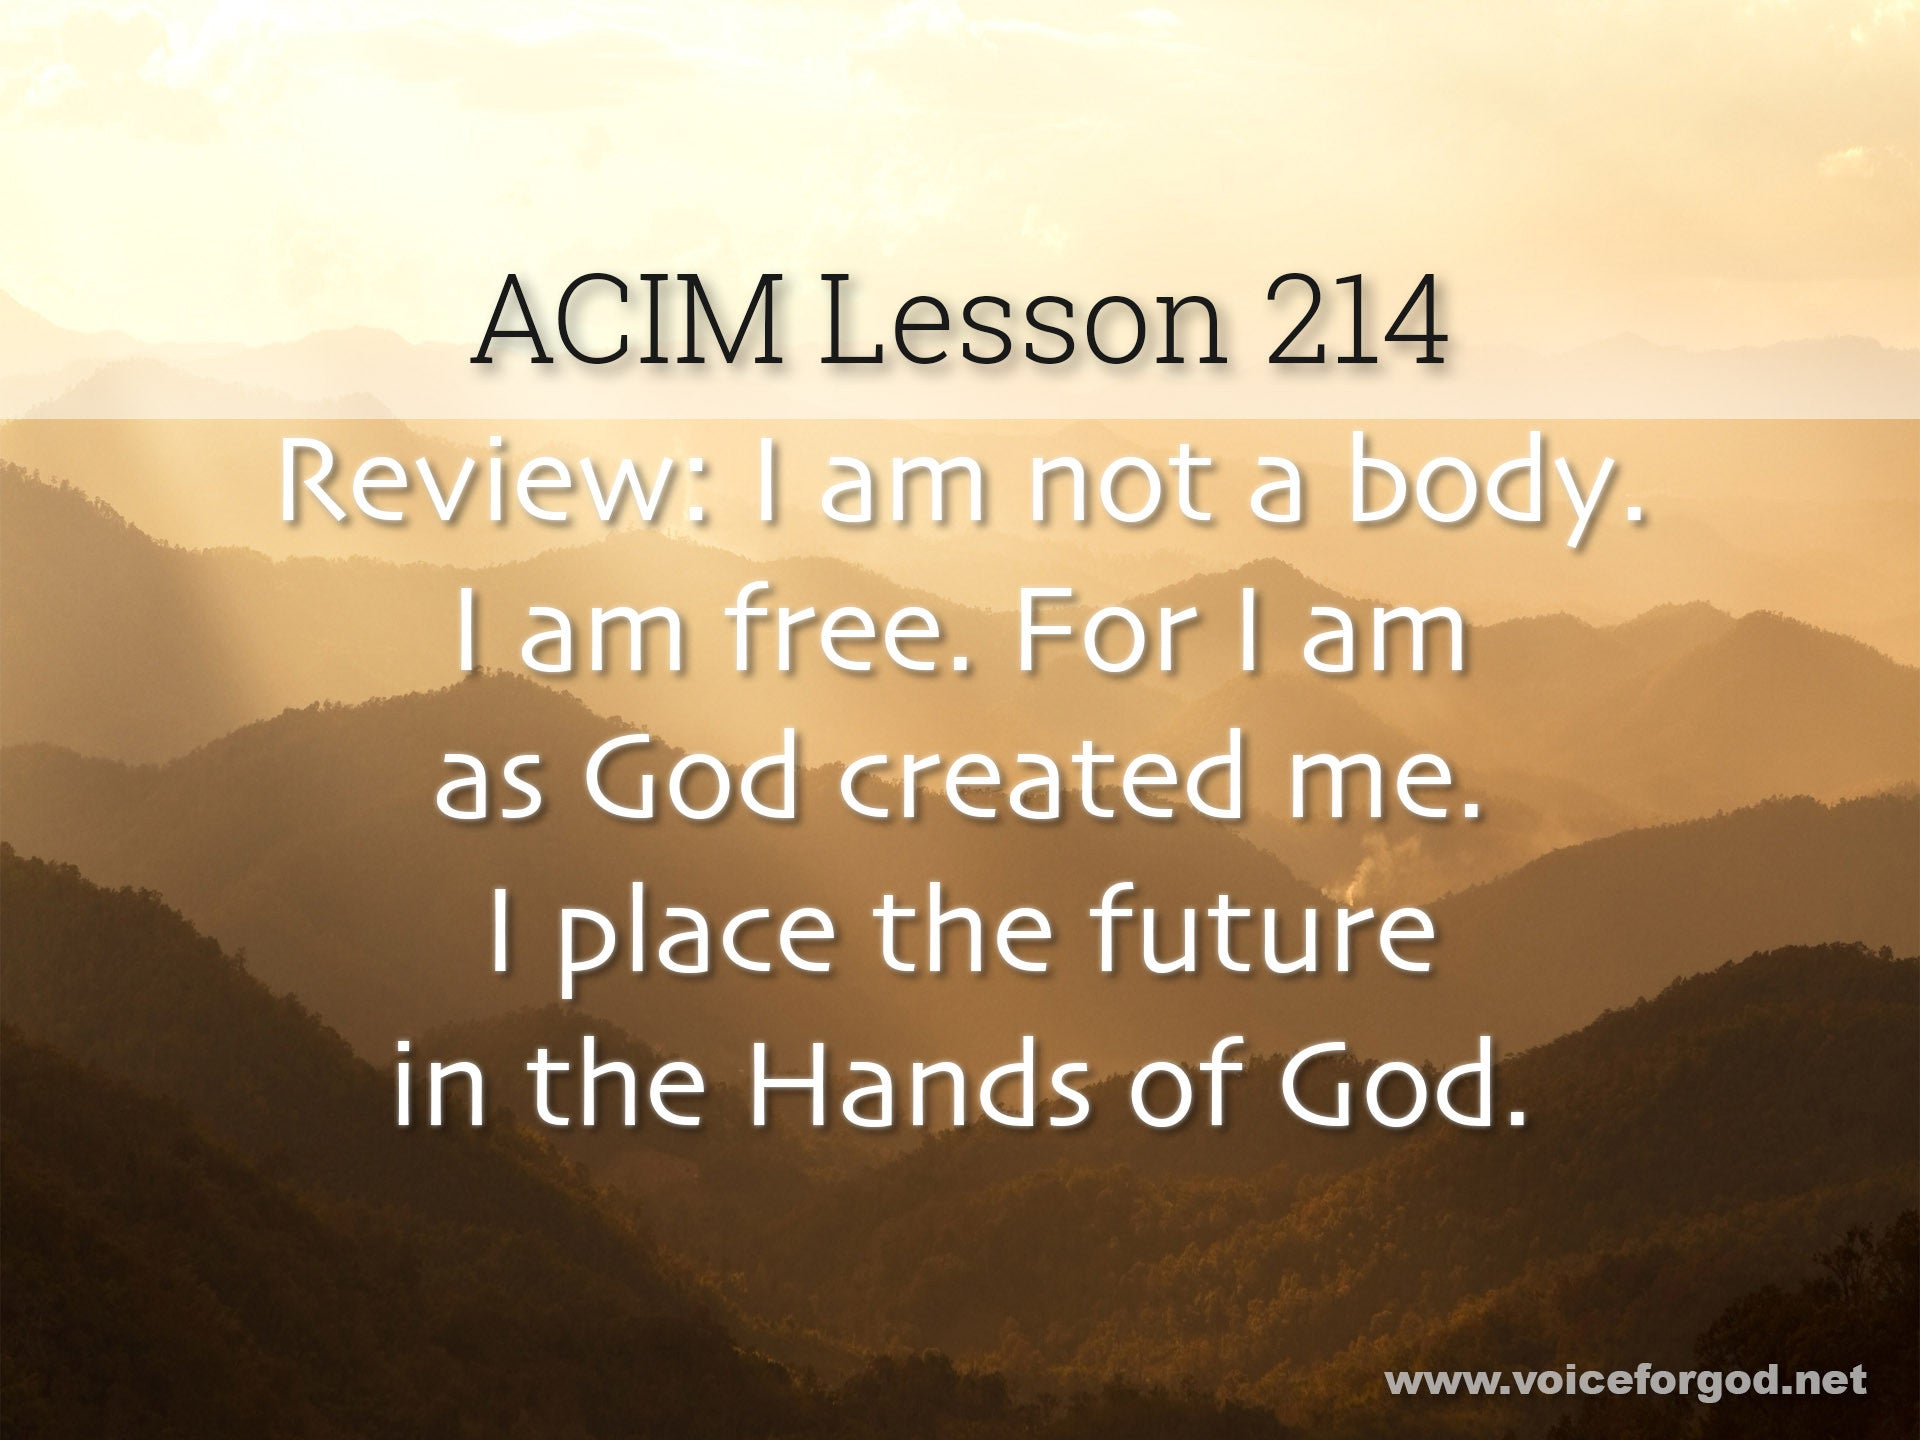 ACIM Lesson 214 - A Course in Miracles Workbook Lesson 214